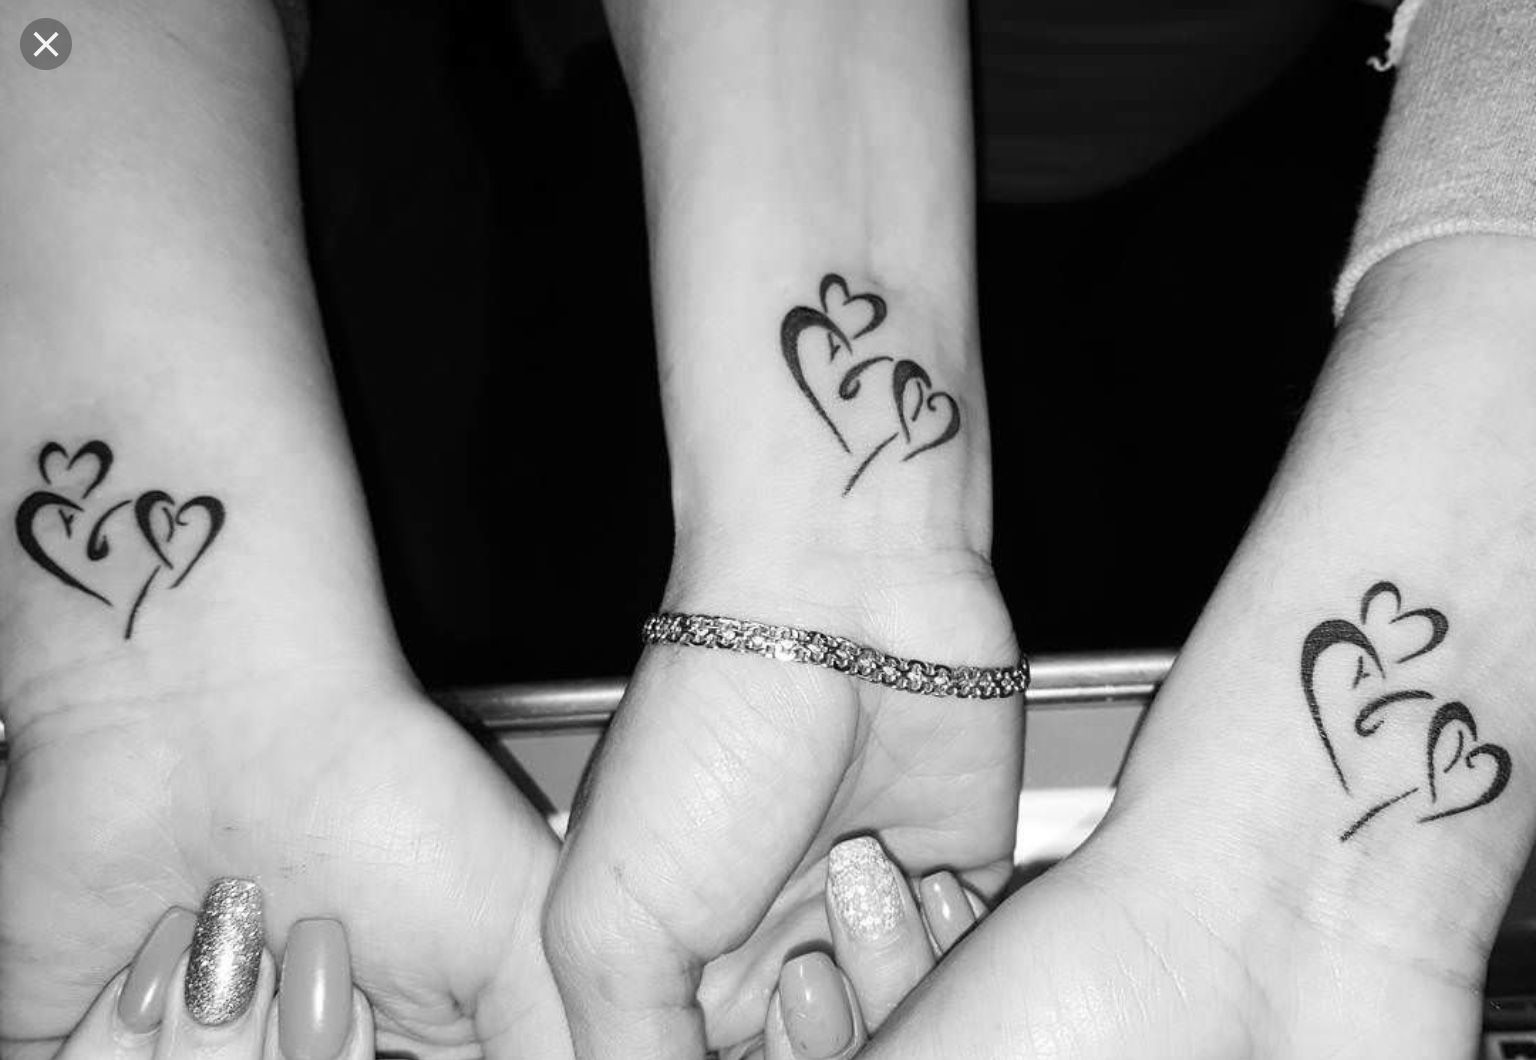 Pin by Leah Fenick on Tattoo Tattoos for daughters